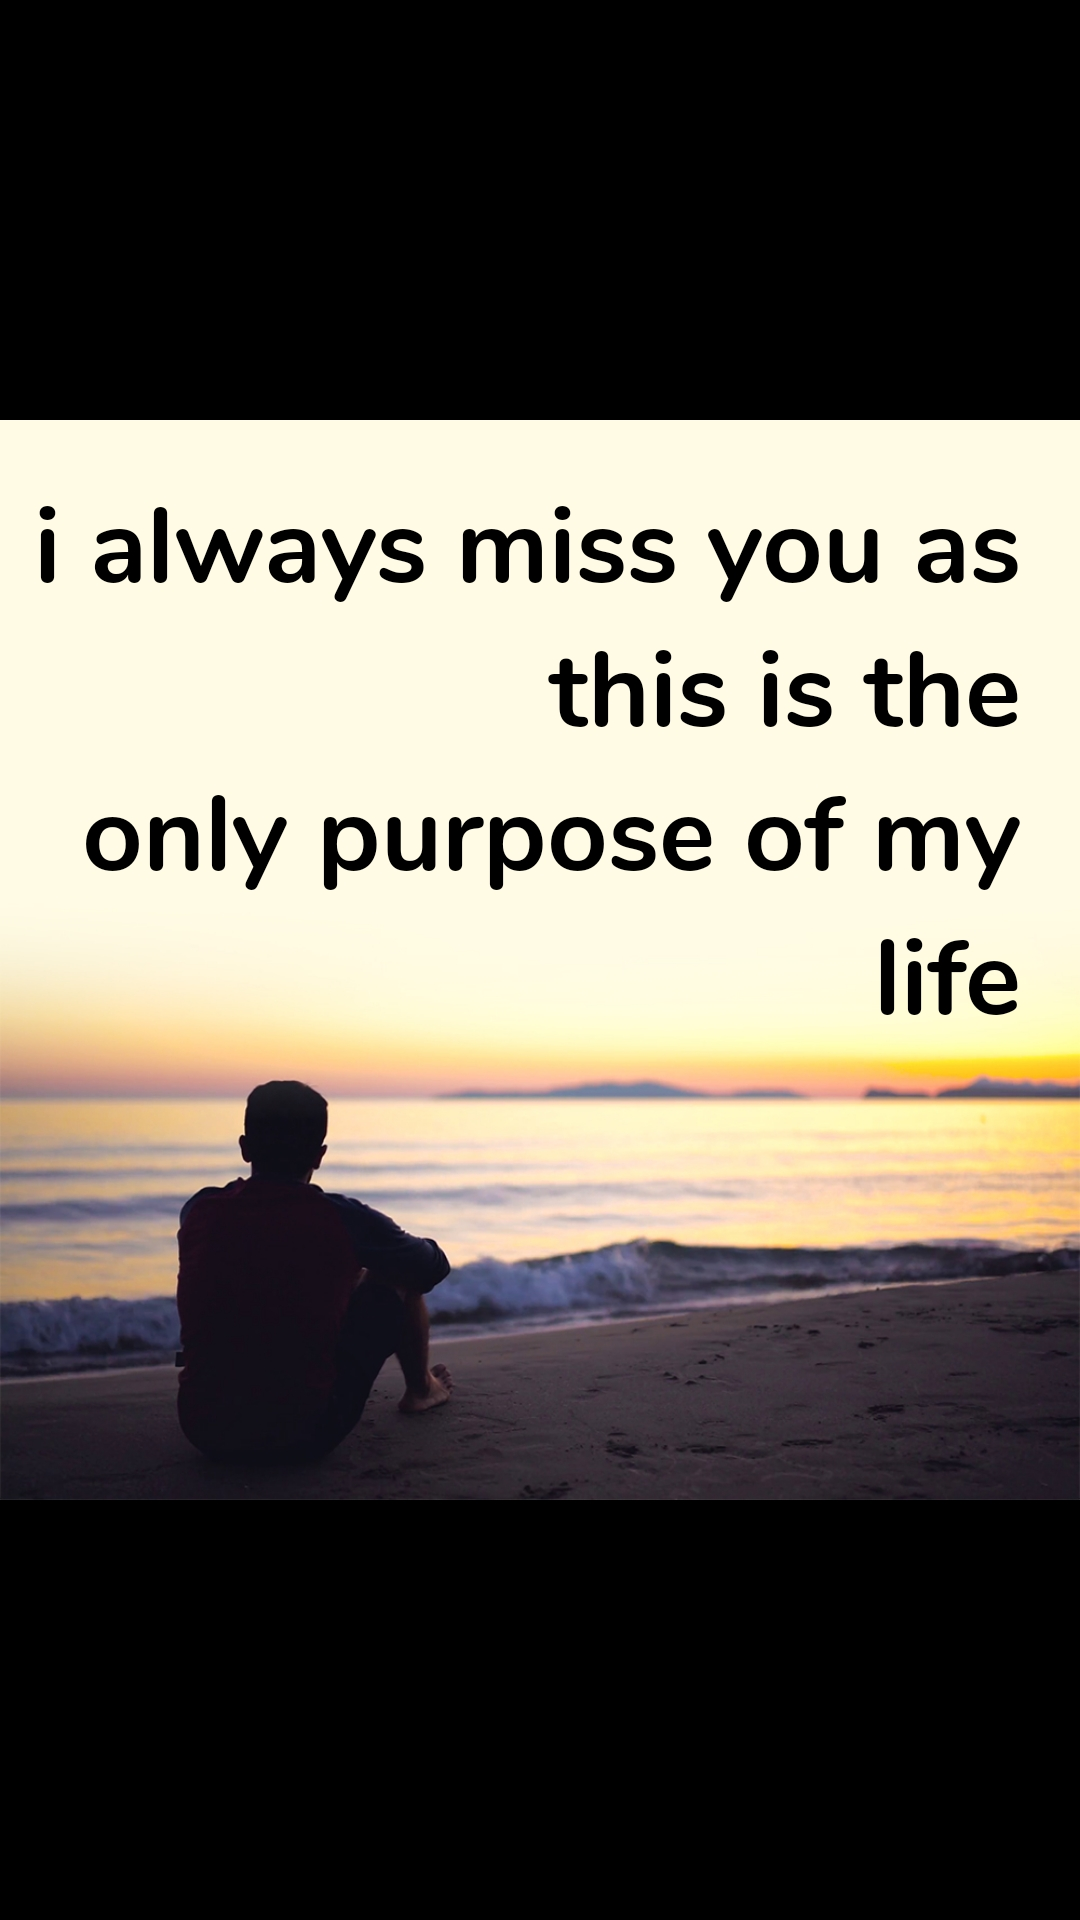 i always miss you as this is the  only purpose of my life